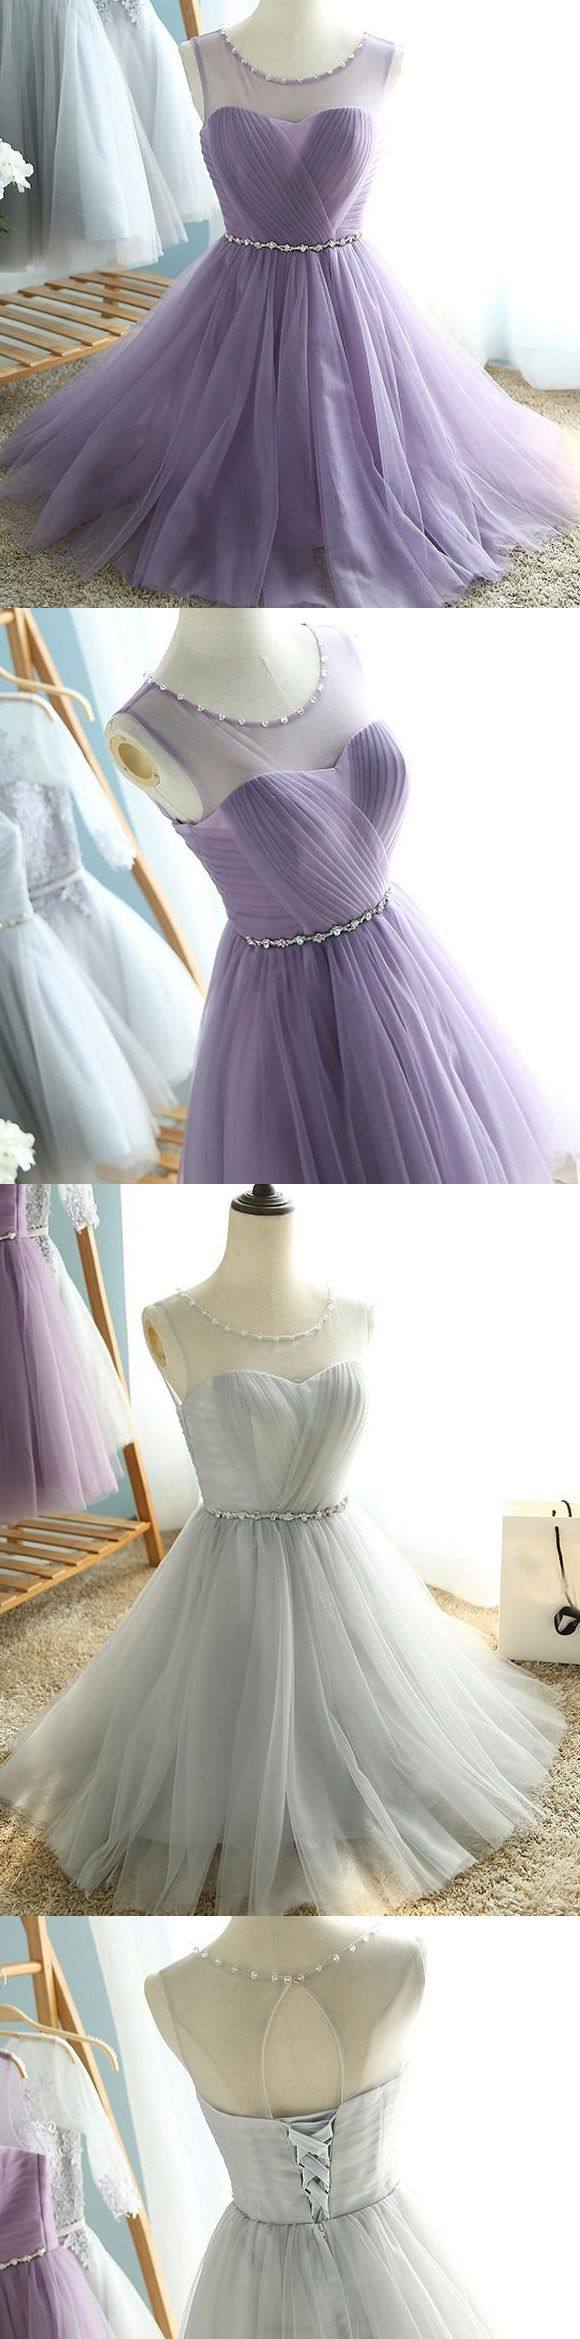 Cheap Prom Dresses, Short Prom Dresses, Prom Dresses Cheap, Blue Prom Dresses, Cheap Short Prom Dresses, Light Blue Prom Dresses, Cheap Homecoming Dresses, Cheap Short Homecoming Dresses, Prom Dresses Online, Light Blue dresses, Homecoming Dresses Cheap, A-line/Princess Party Dresses, Light Blue Homecoming Dresses, Short Party Dresses, Short Light Blue Party Dresses With Bandage Mini Round Sale Online